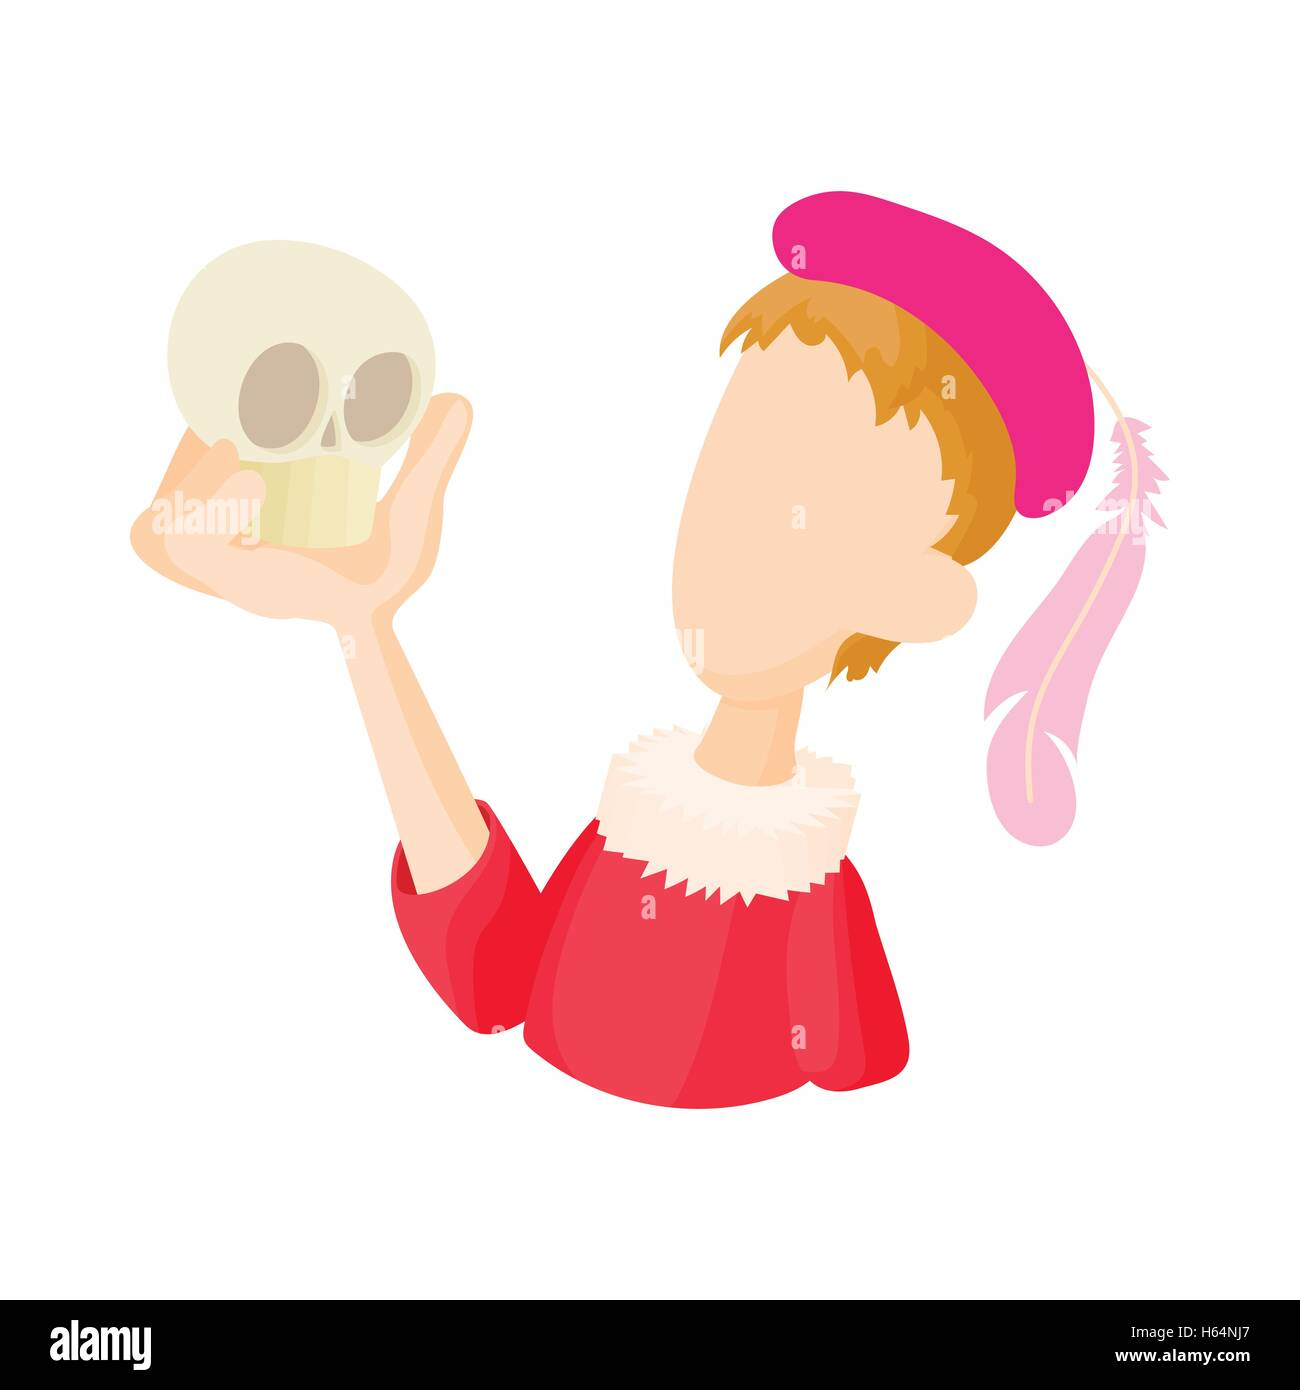 Hamlet actor icon in cartoon style - Stock Image